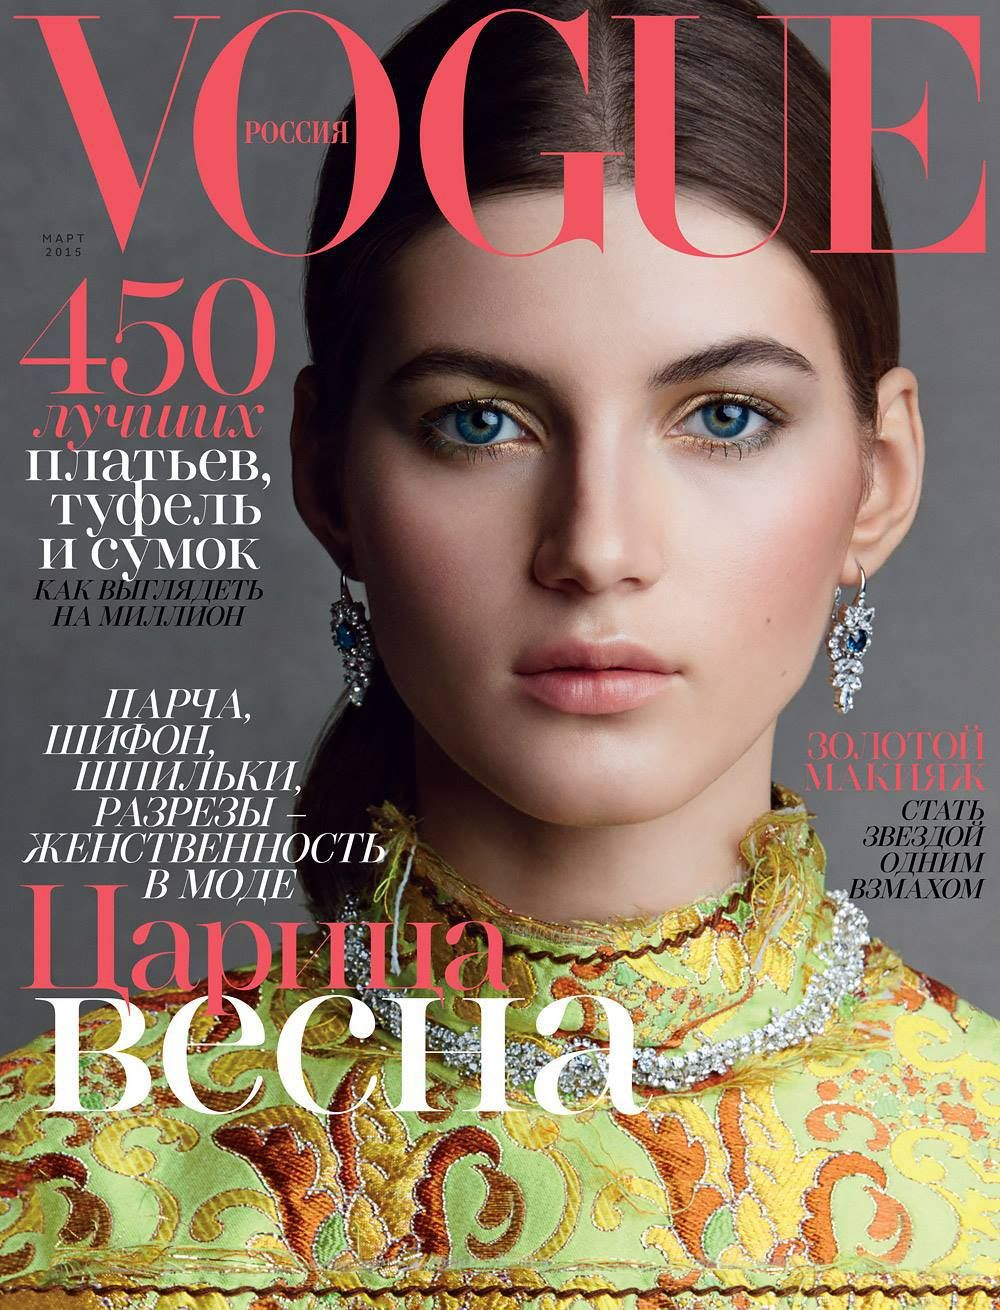 Valery Kaufman, Anya Lyagoshina, Rose Smith by Patrick Demarchelier for Vogue Russia March 2015